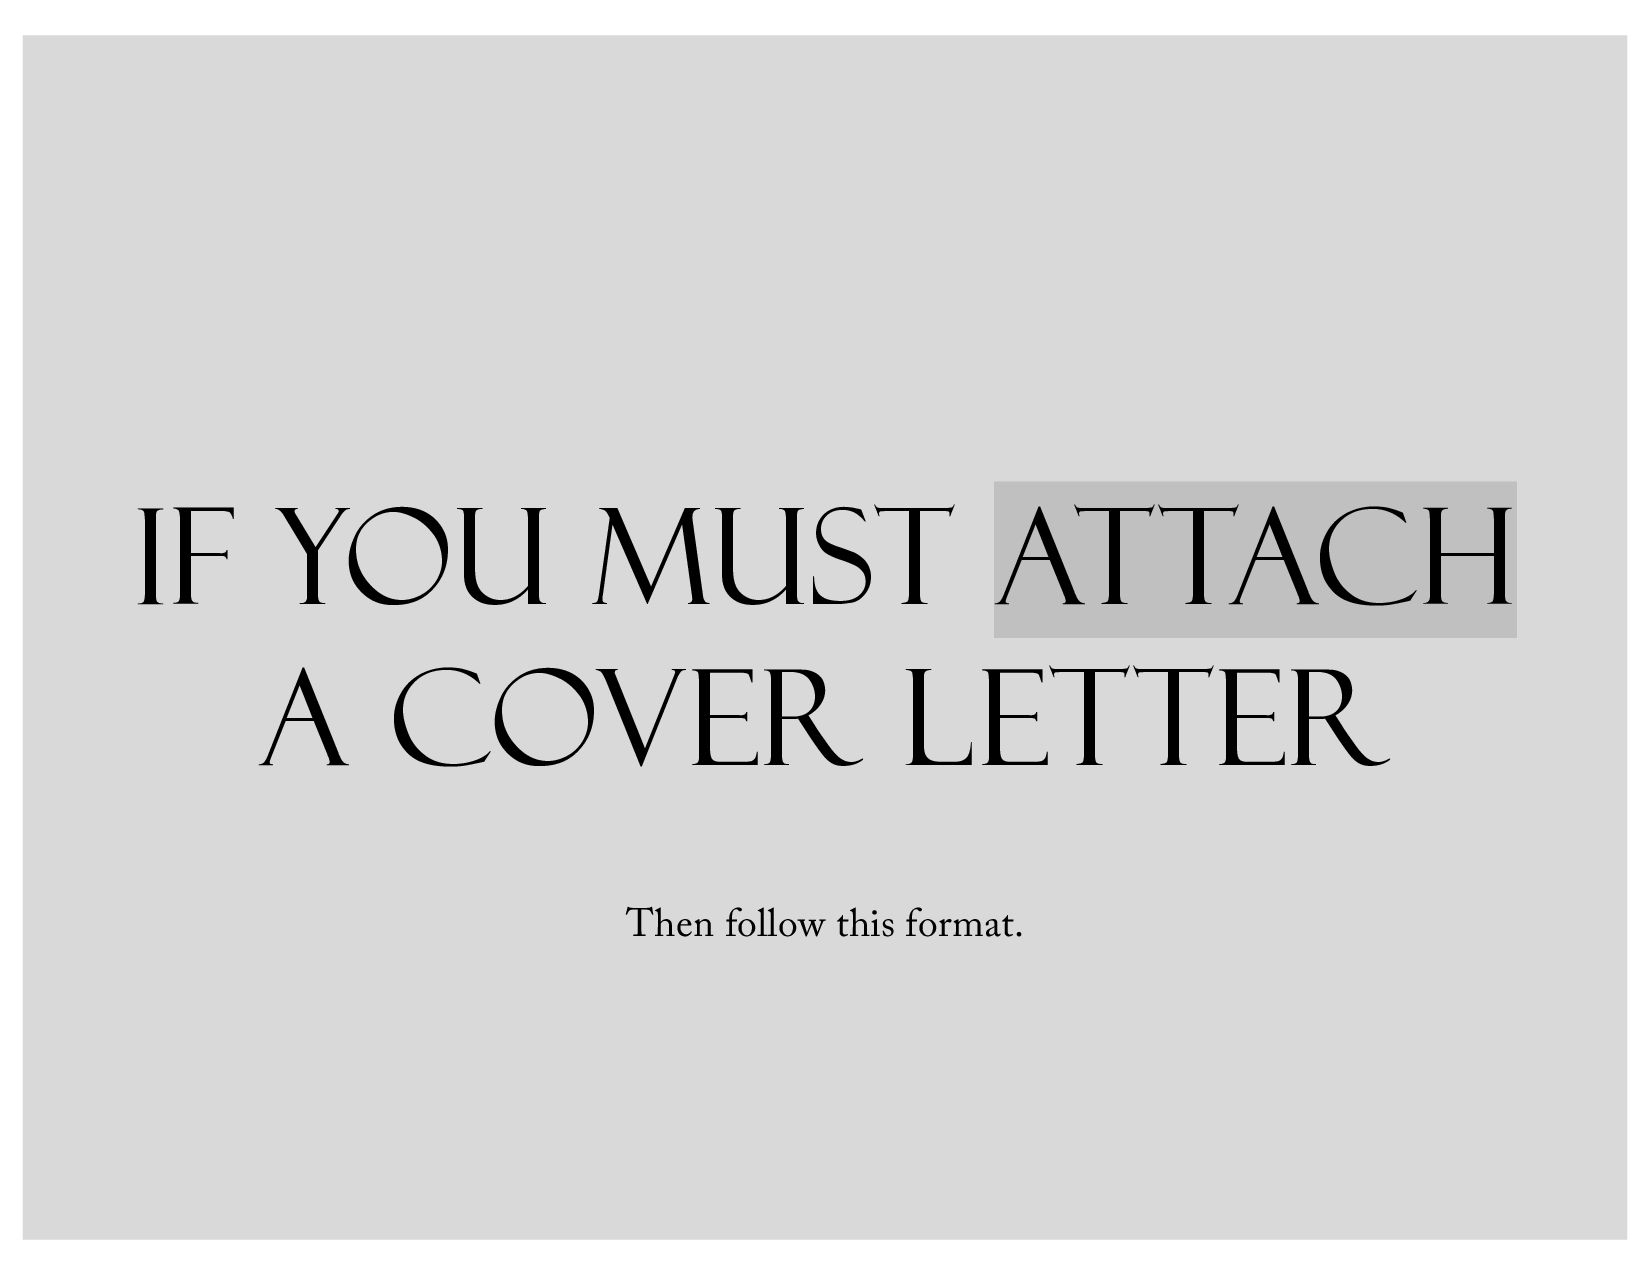 IF YOU MUST ATTACH A COVER LETTER